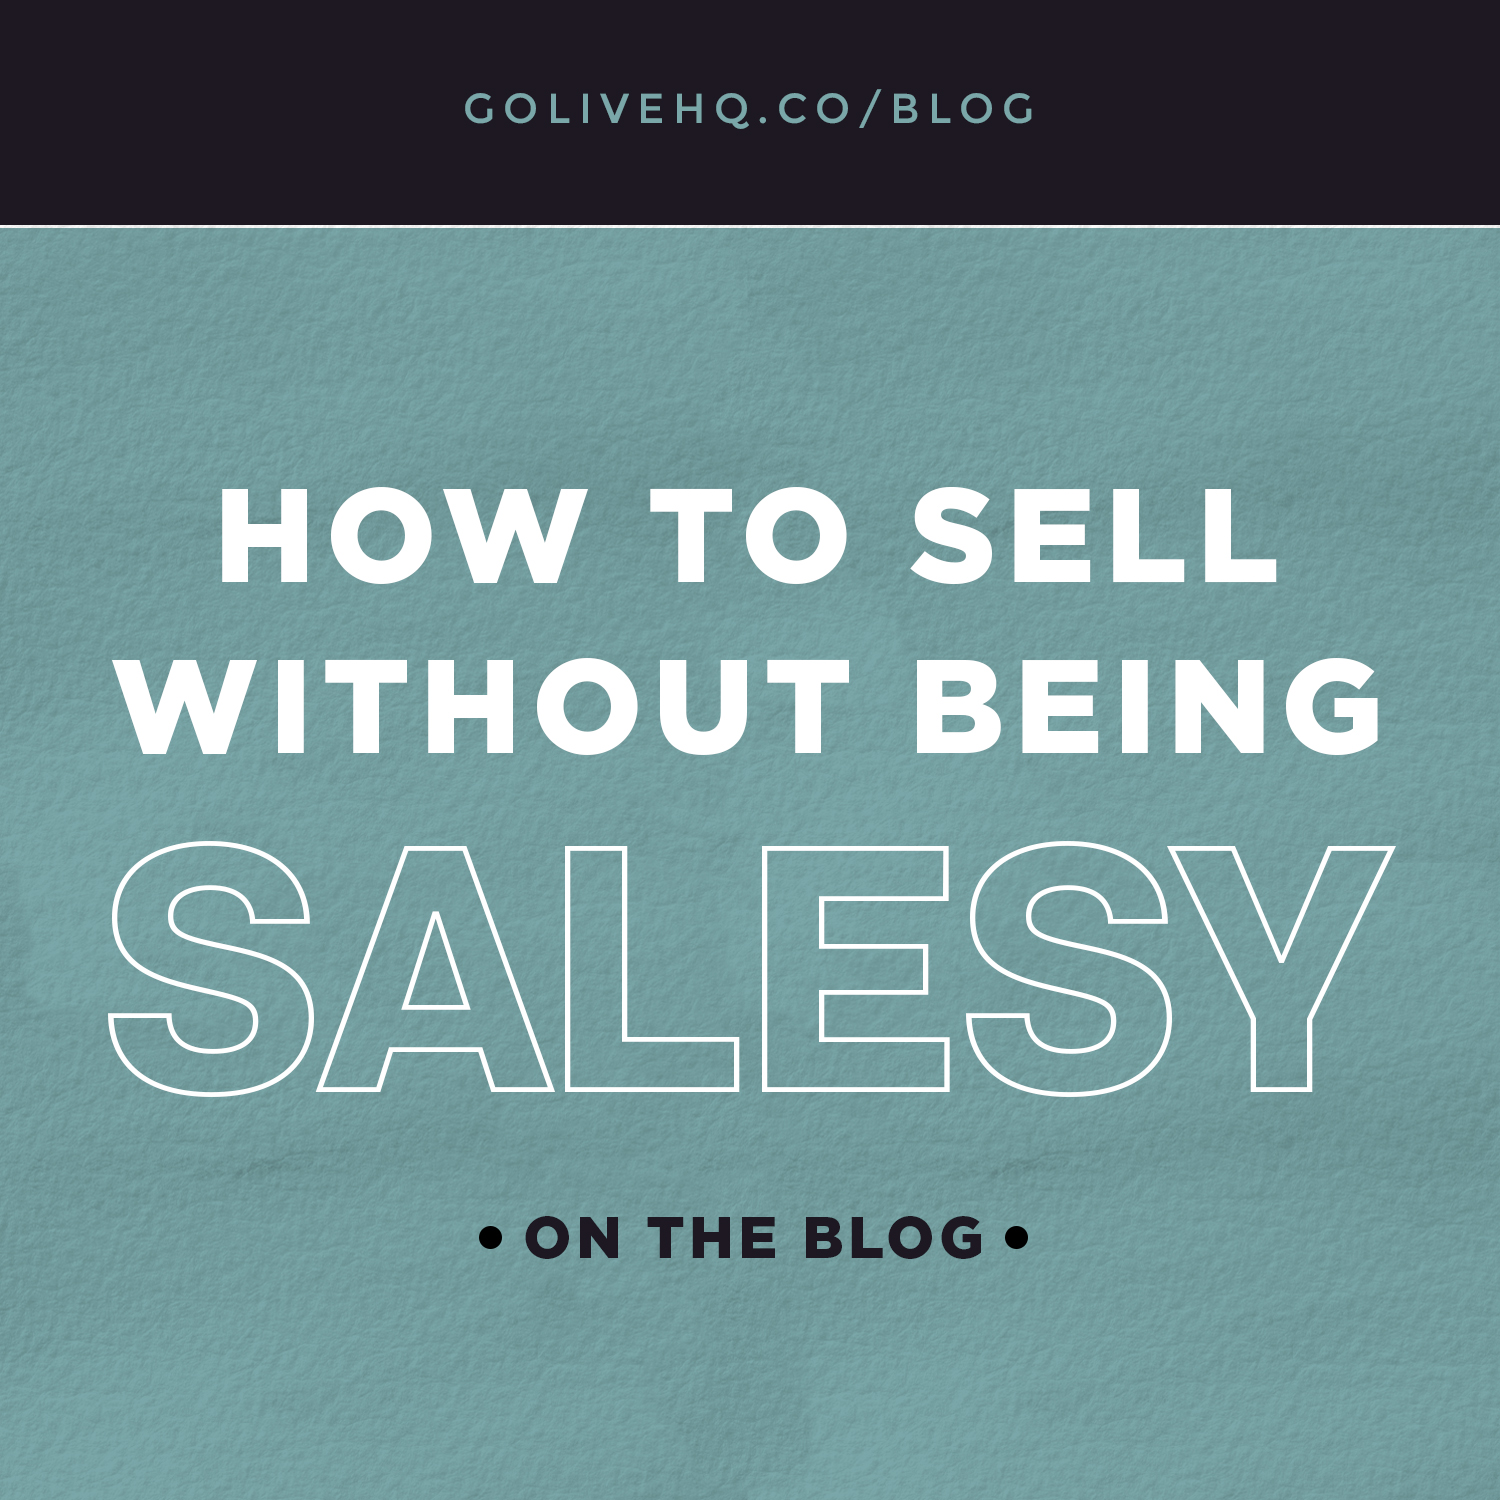 4 simple ways to sell without being salesy   |   by GOLIVEHQ.CO